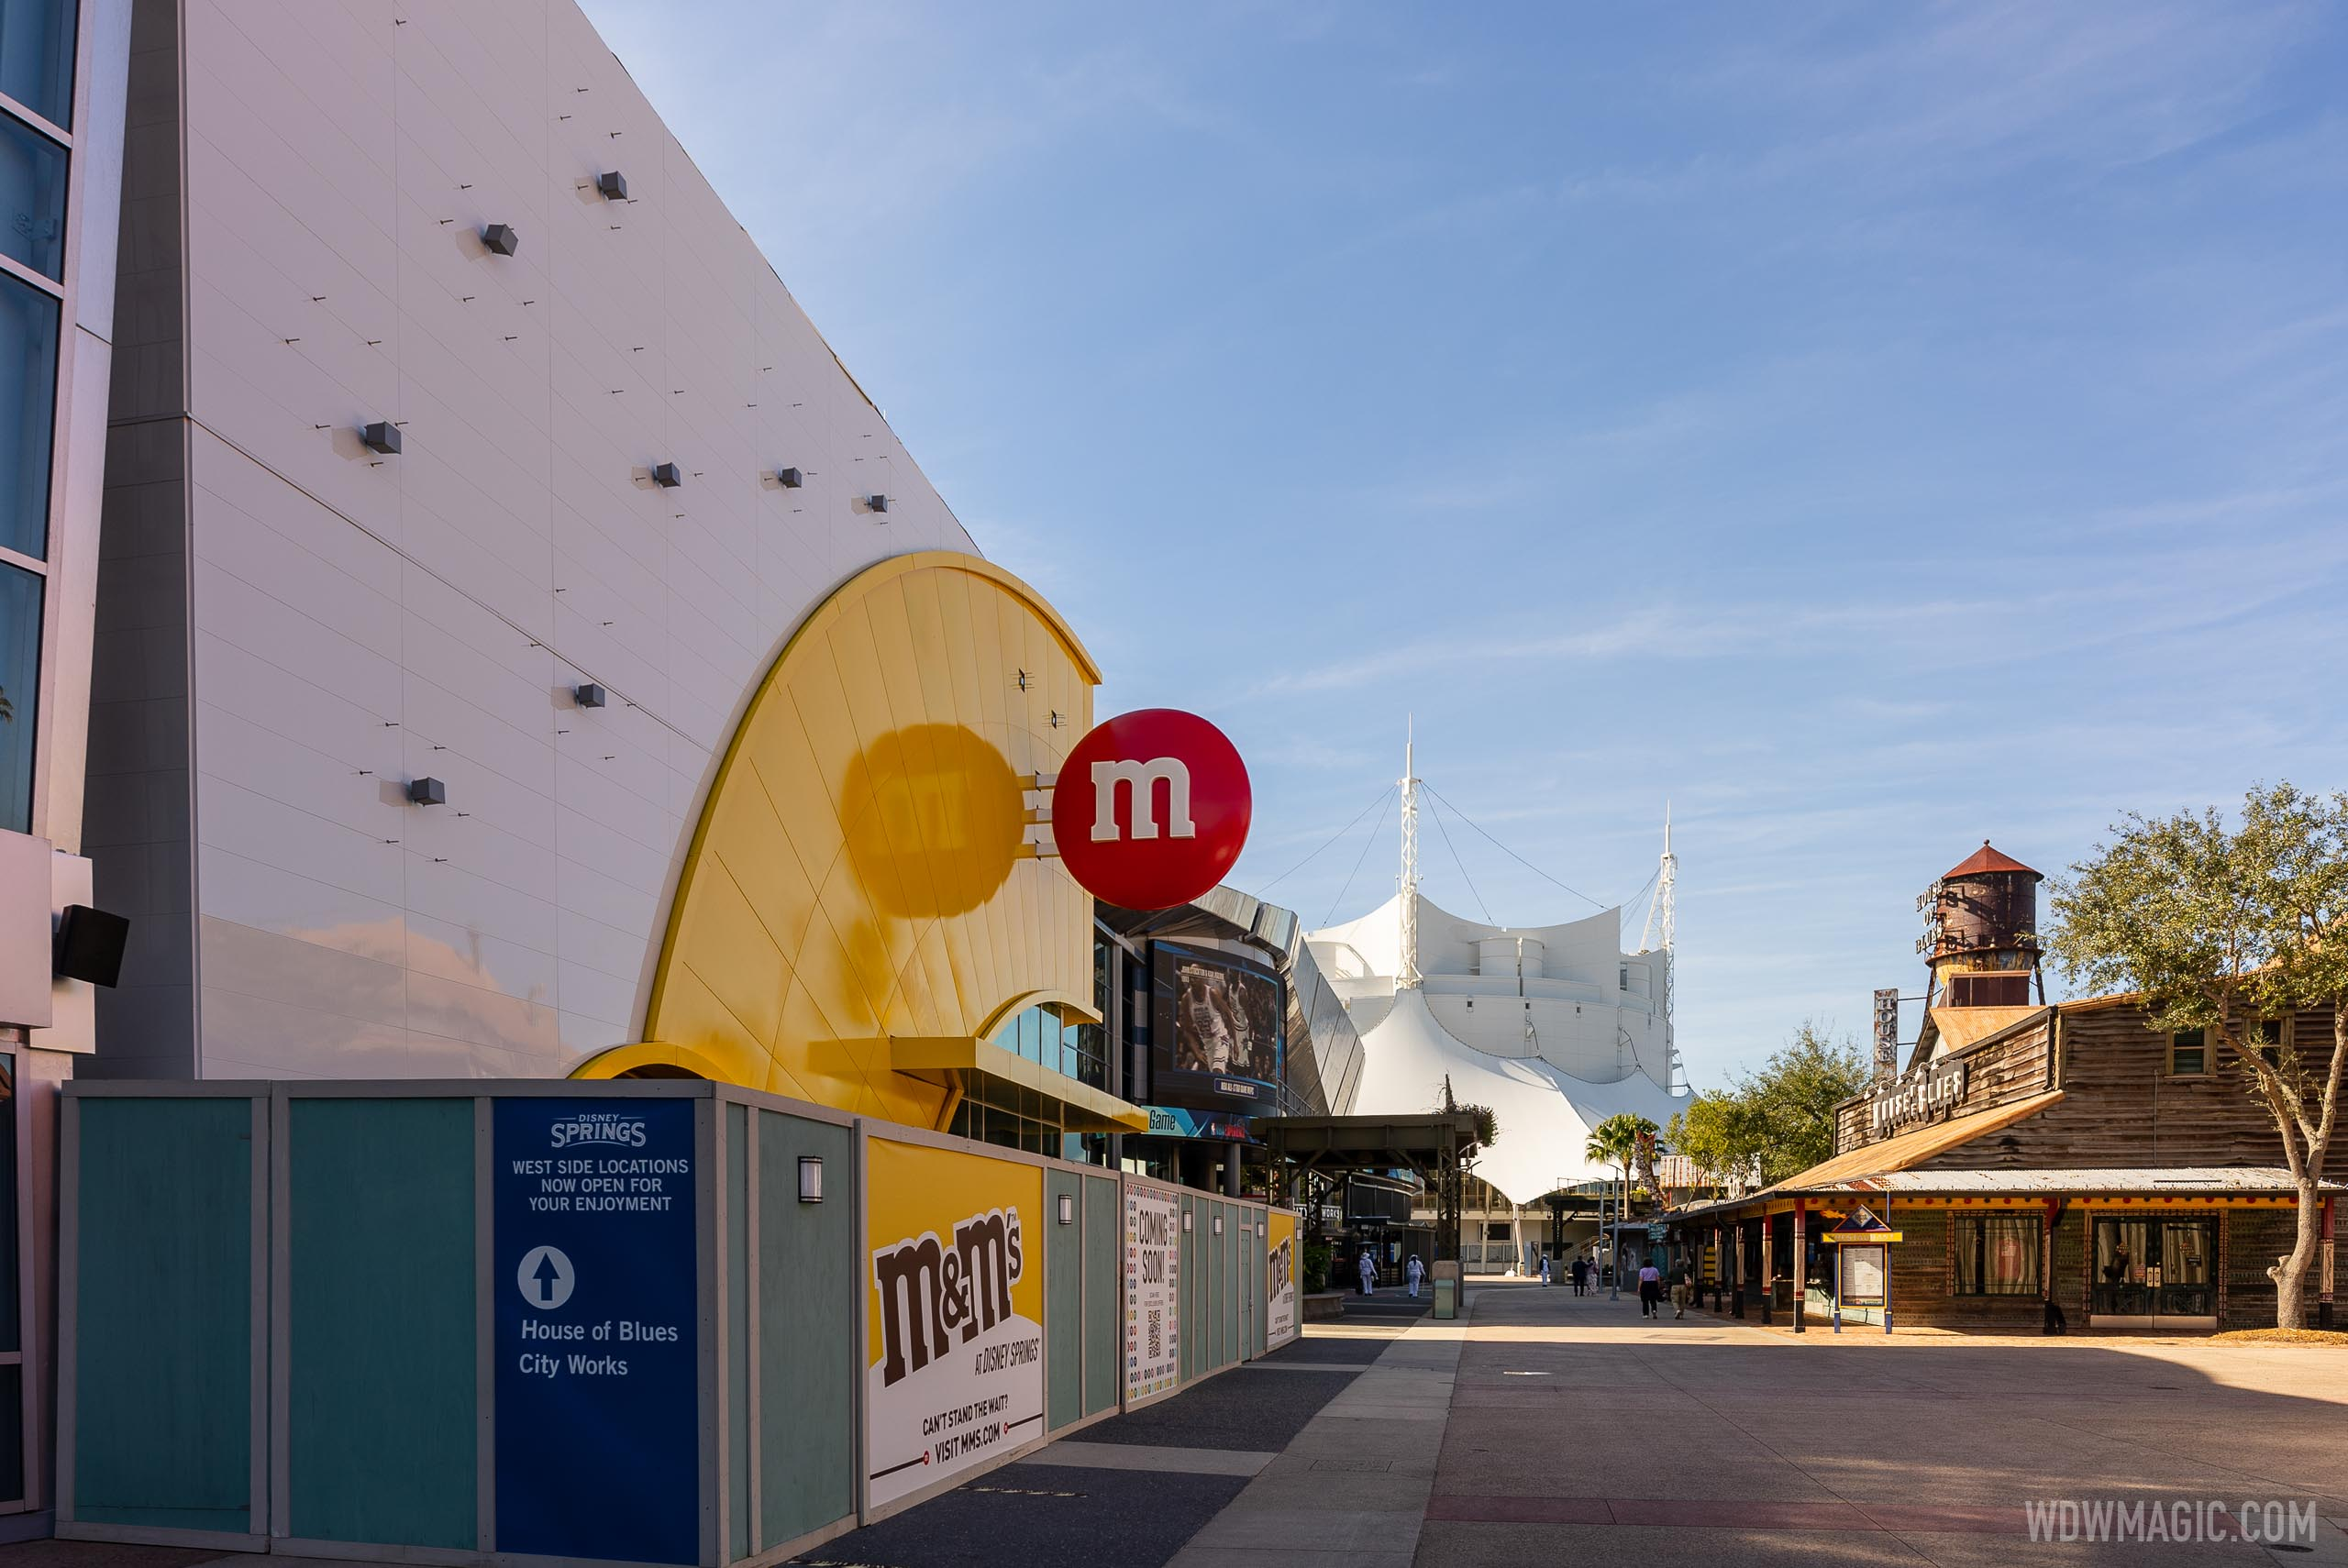 M&M'S Store Disney Springs construction - January 19 2021